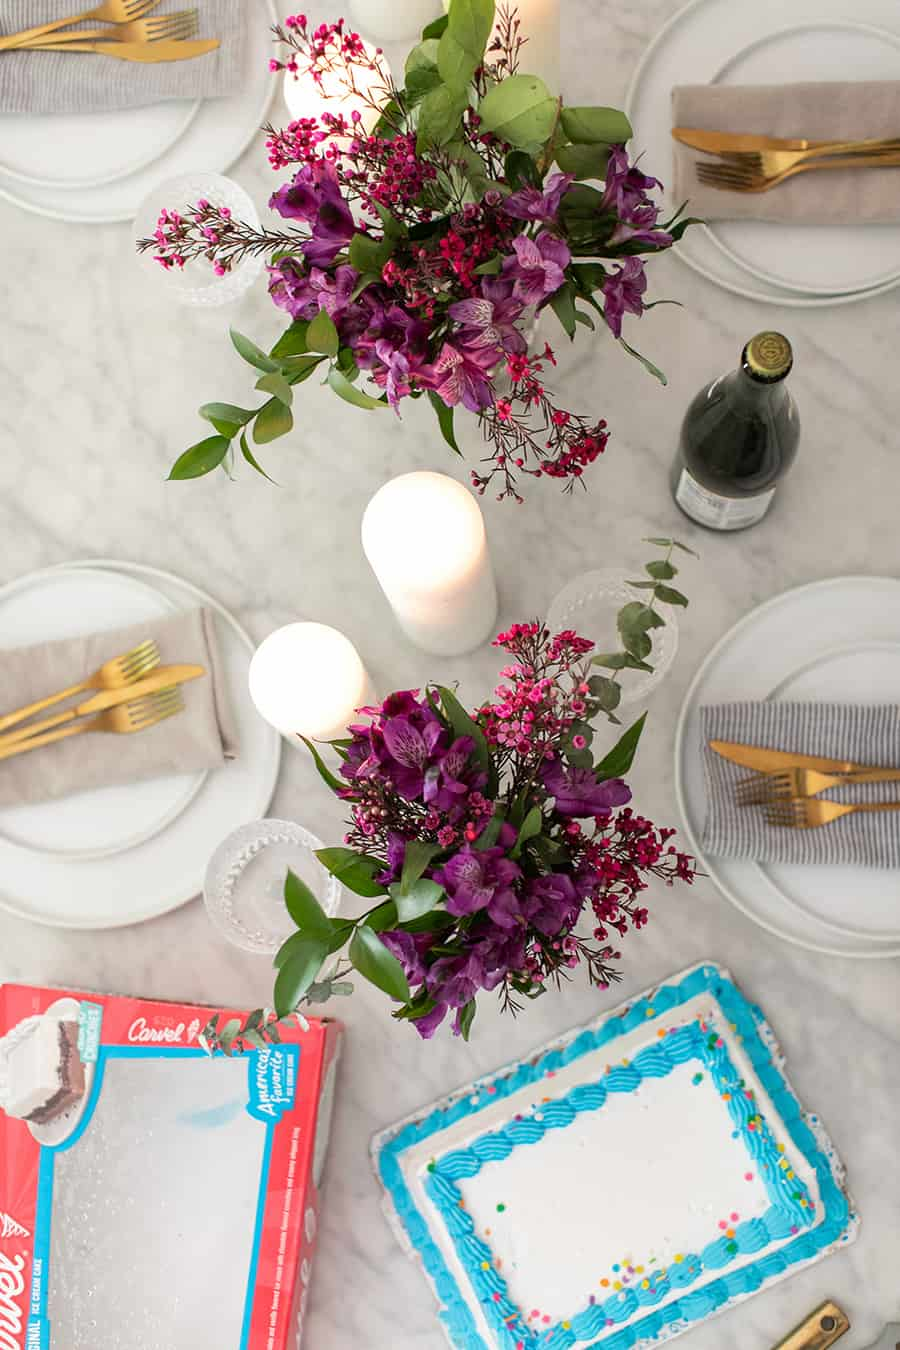 cake, flowers, sparkling apple cider and candles on a table for a back to school dinner.